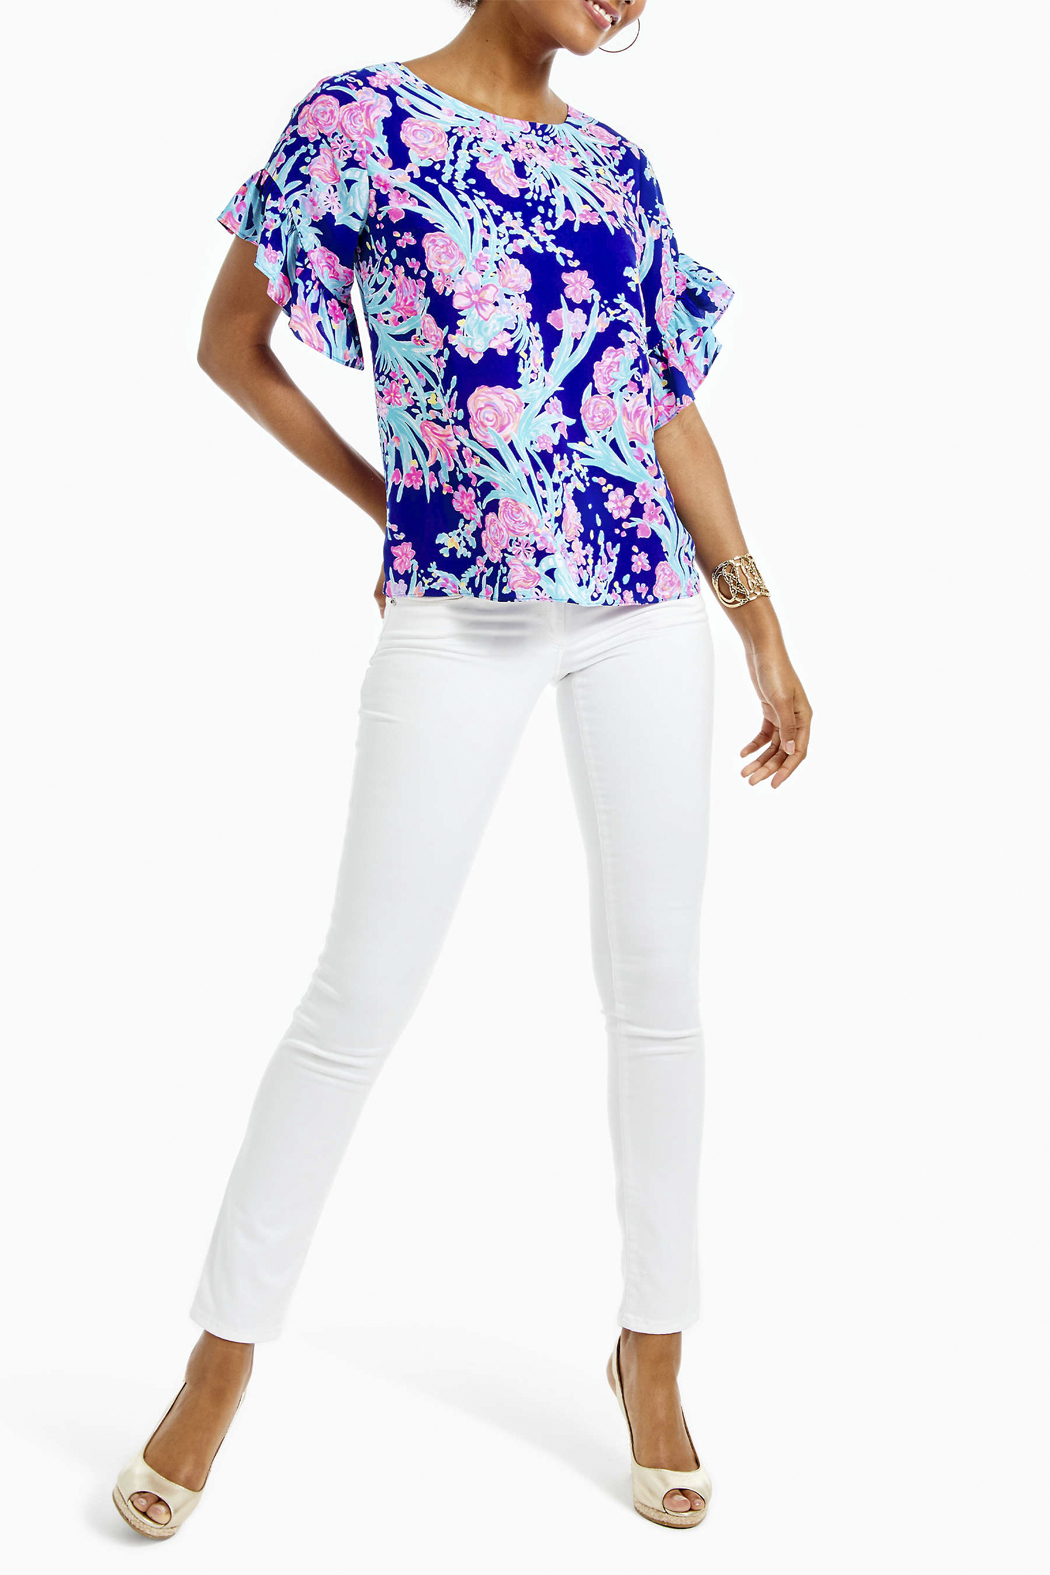 Lilly Pulitzer Darlah Top - Side Cropped Image